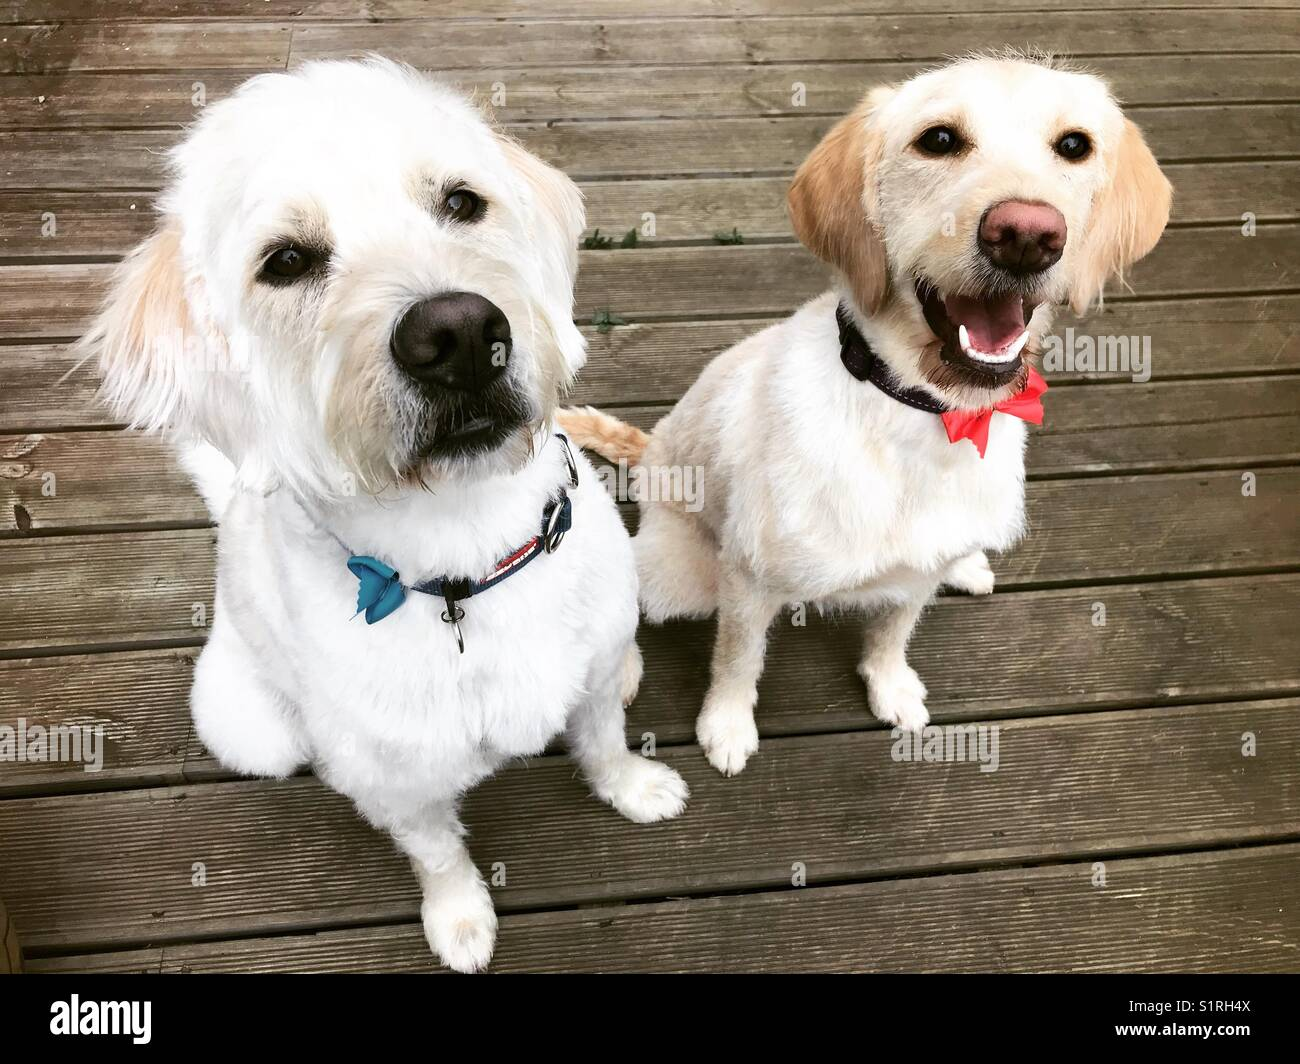 Sully and Brie the beautiful labradoodles enjoying the deck - Stock Image